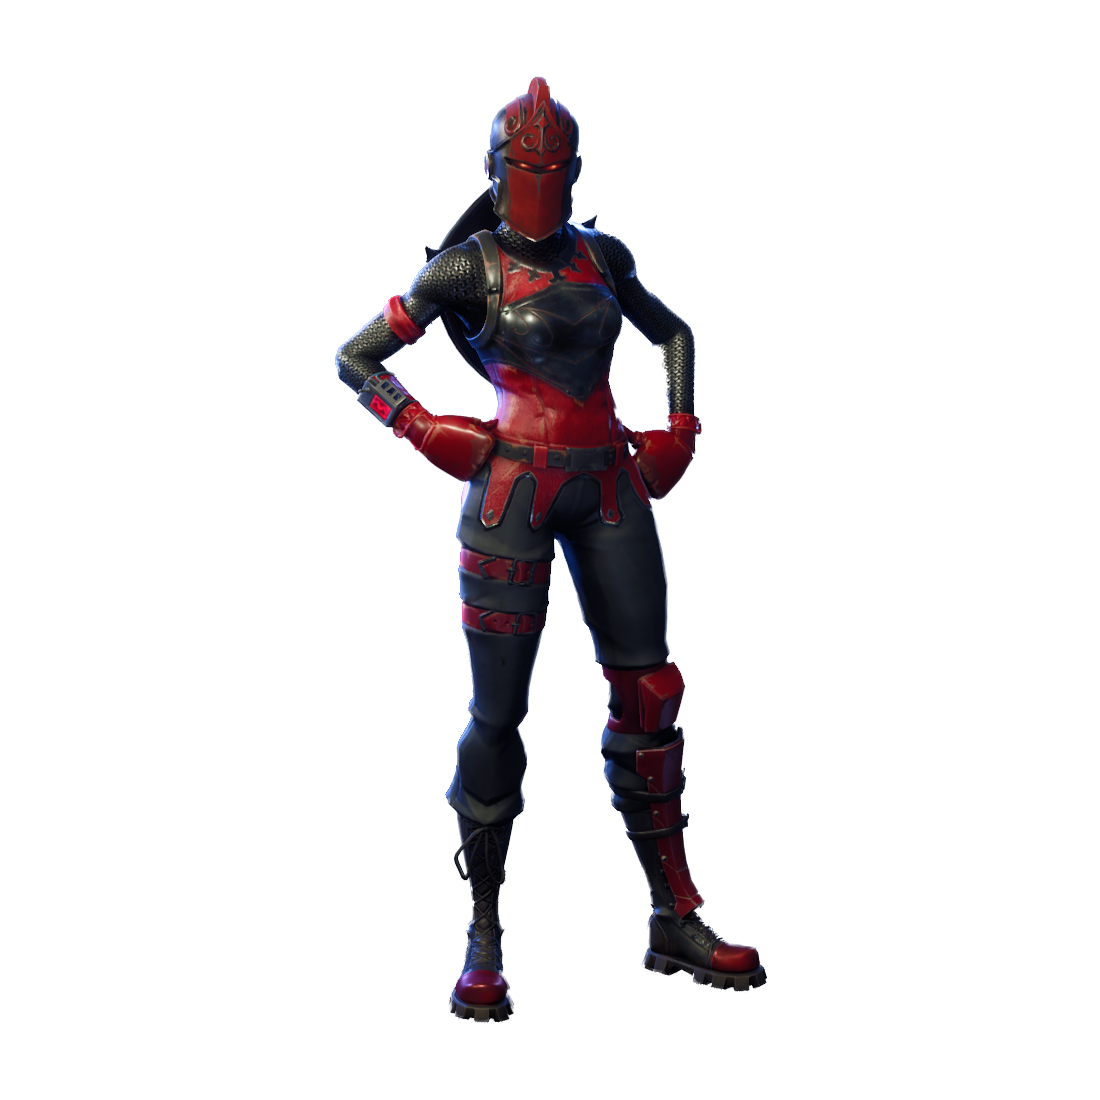 Black knight fortnite png. Red image purepng free